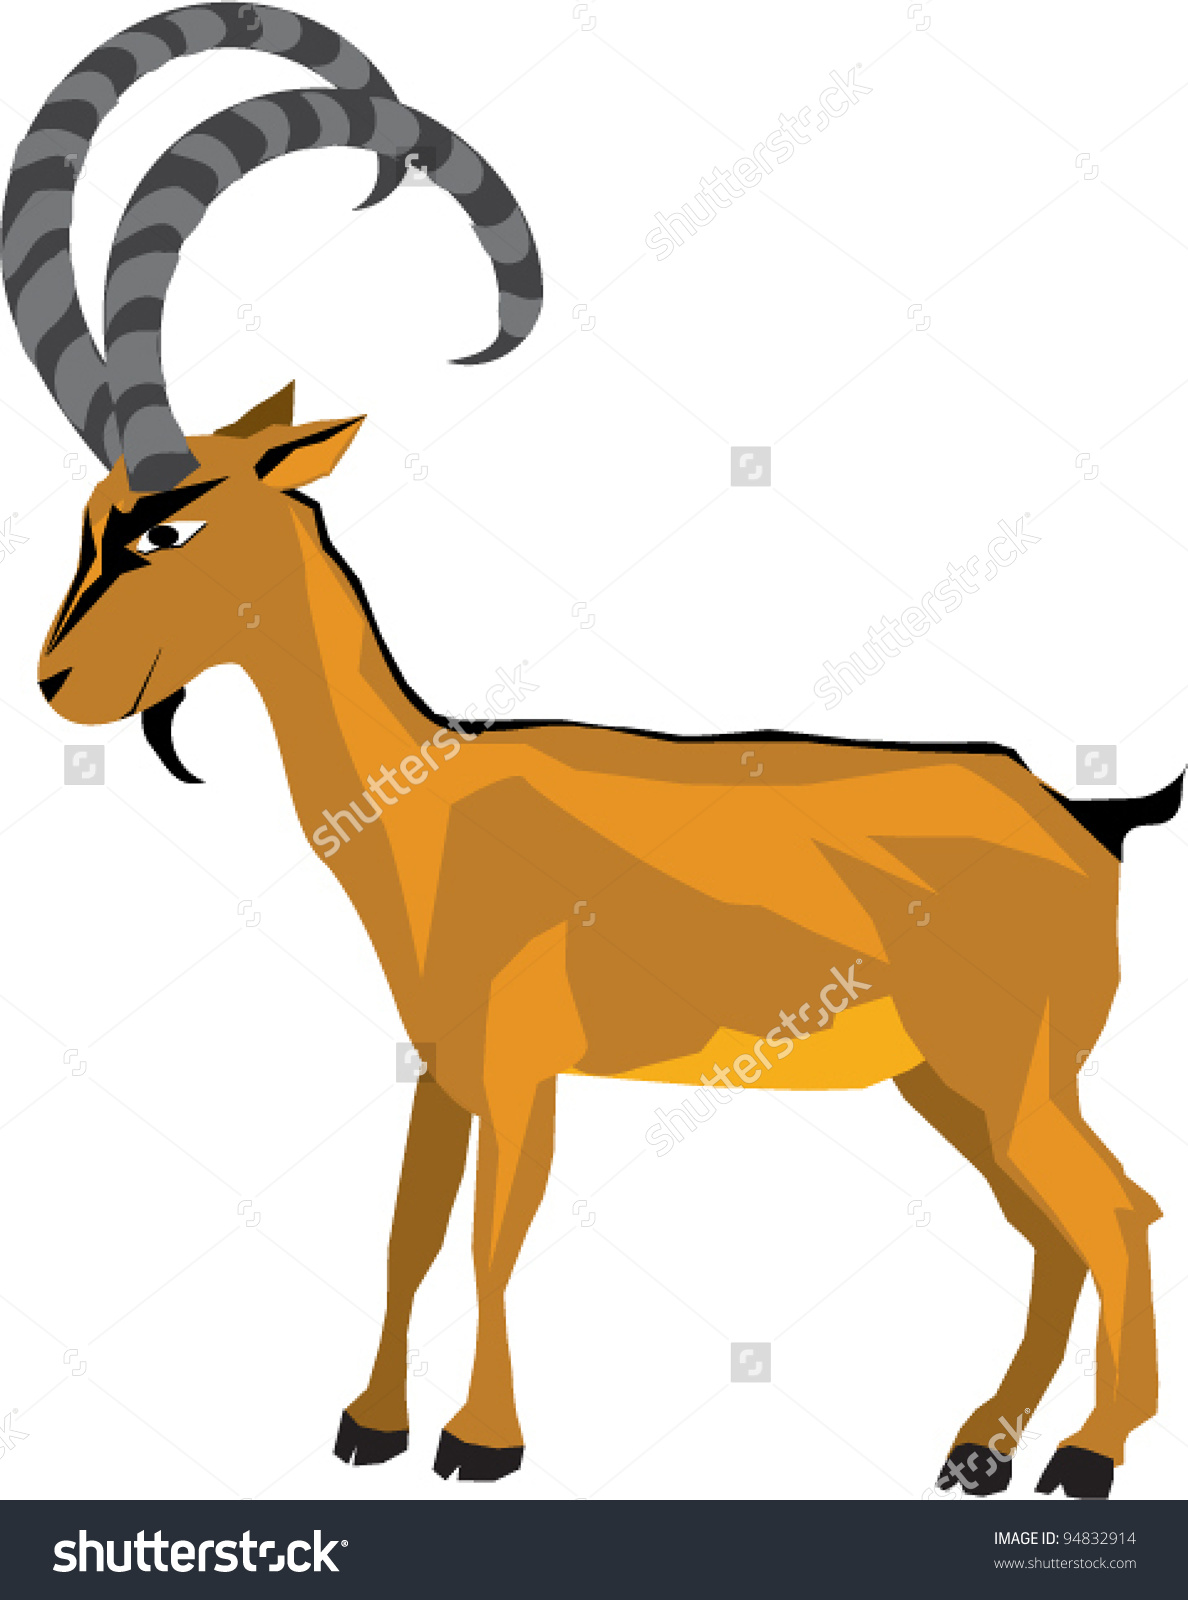 Ibex clipart #6, Download drawings